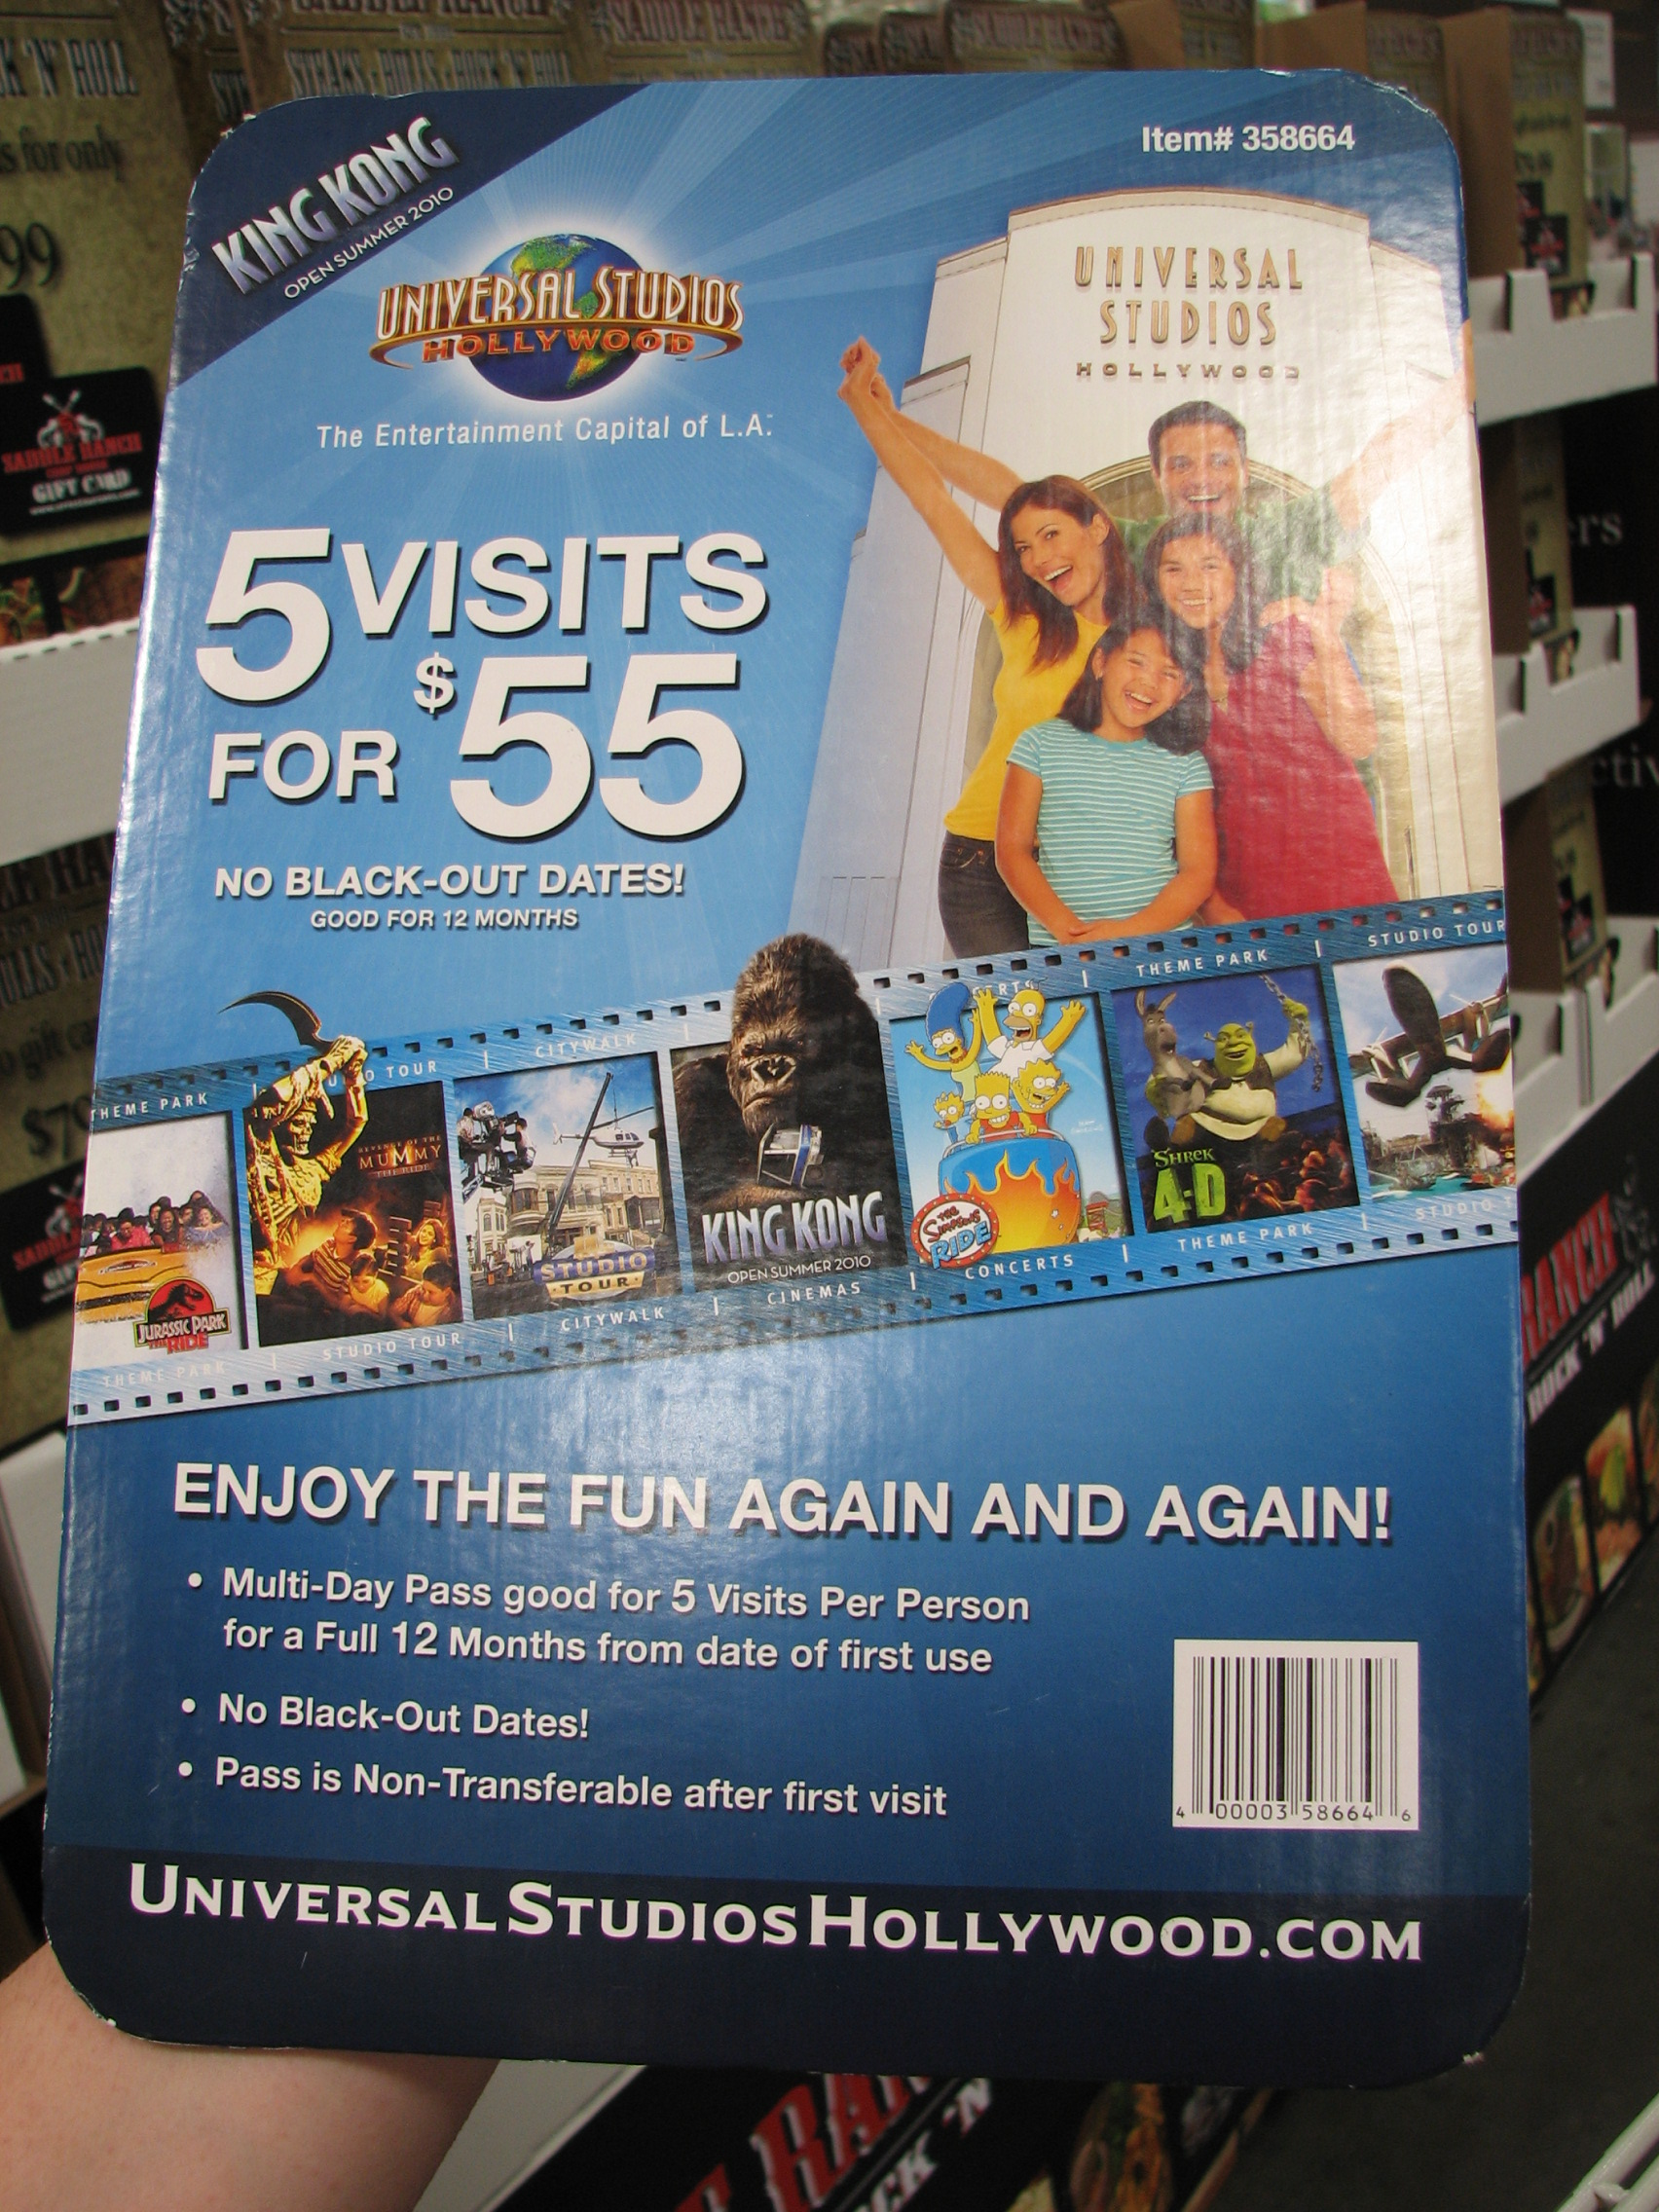 Universal Studios Hollywood 3 Visit Ticket, eTicket 3 Visits, No Blackout DatesValid 12 Months from Selected 1st Visit DateAdvanced Registration Required for each visitVisits Do not Need to be on Consecutive DaysUniversal City, California.